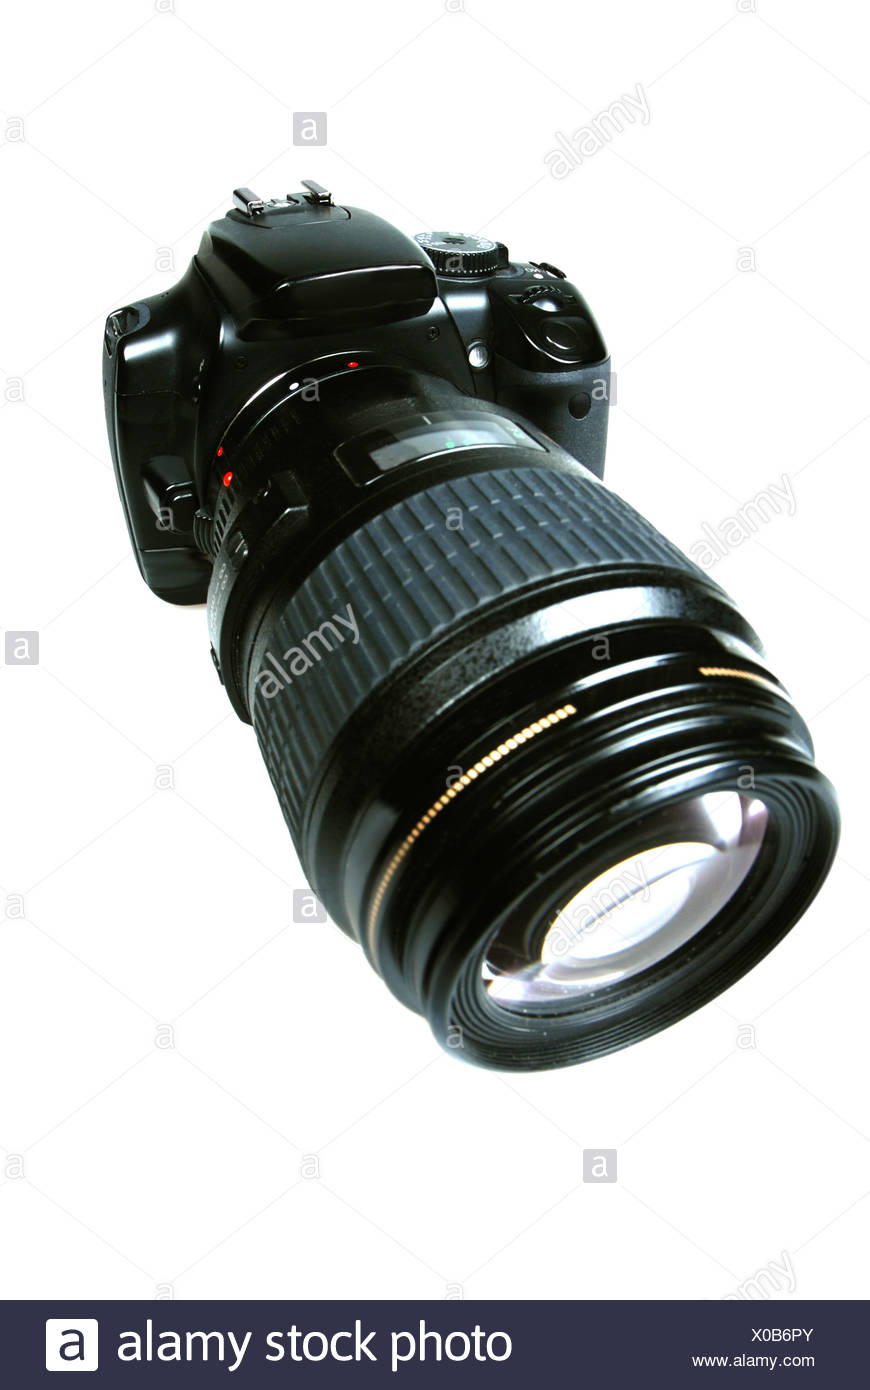 An SLR Camera with a large lens - Stock Image